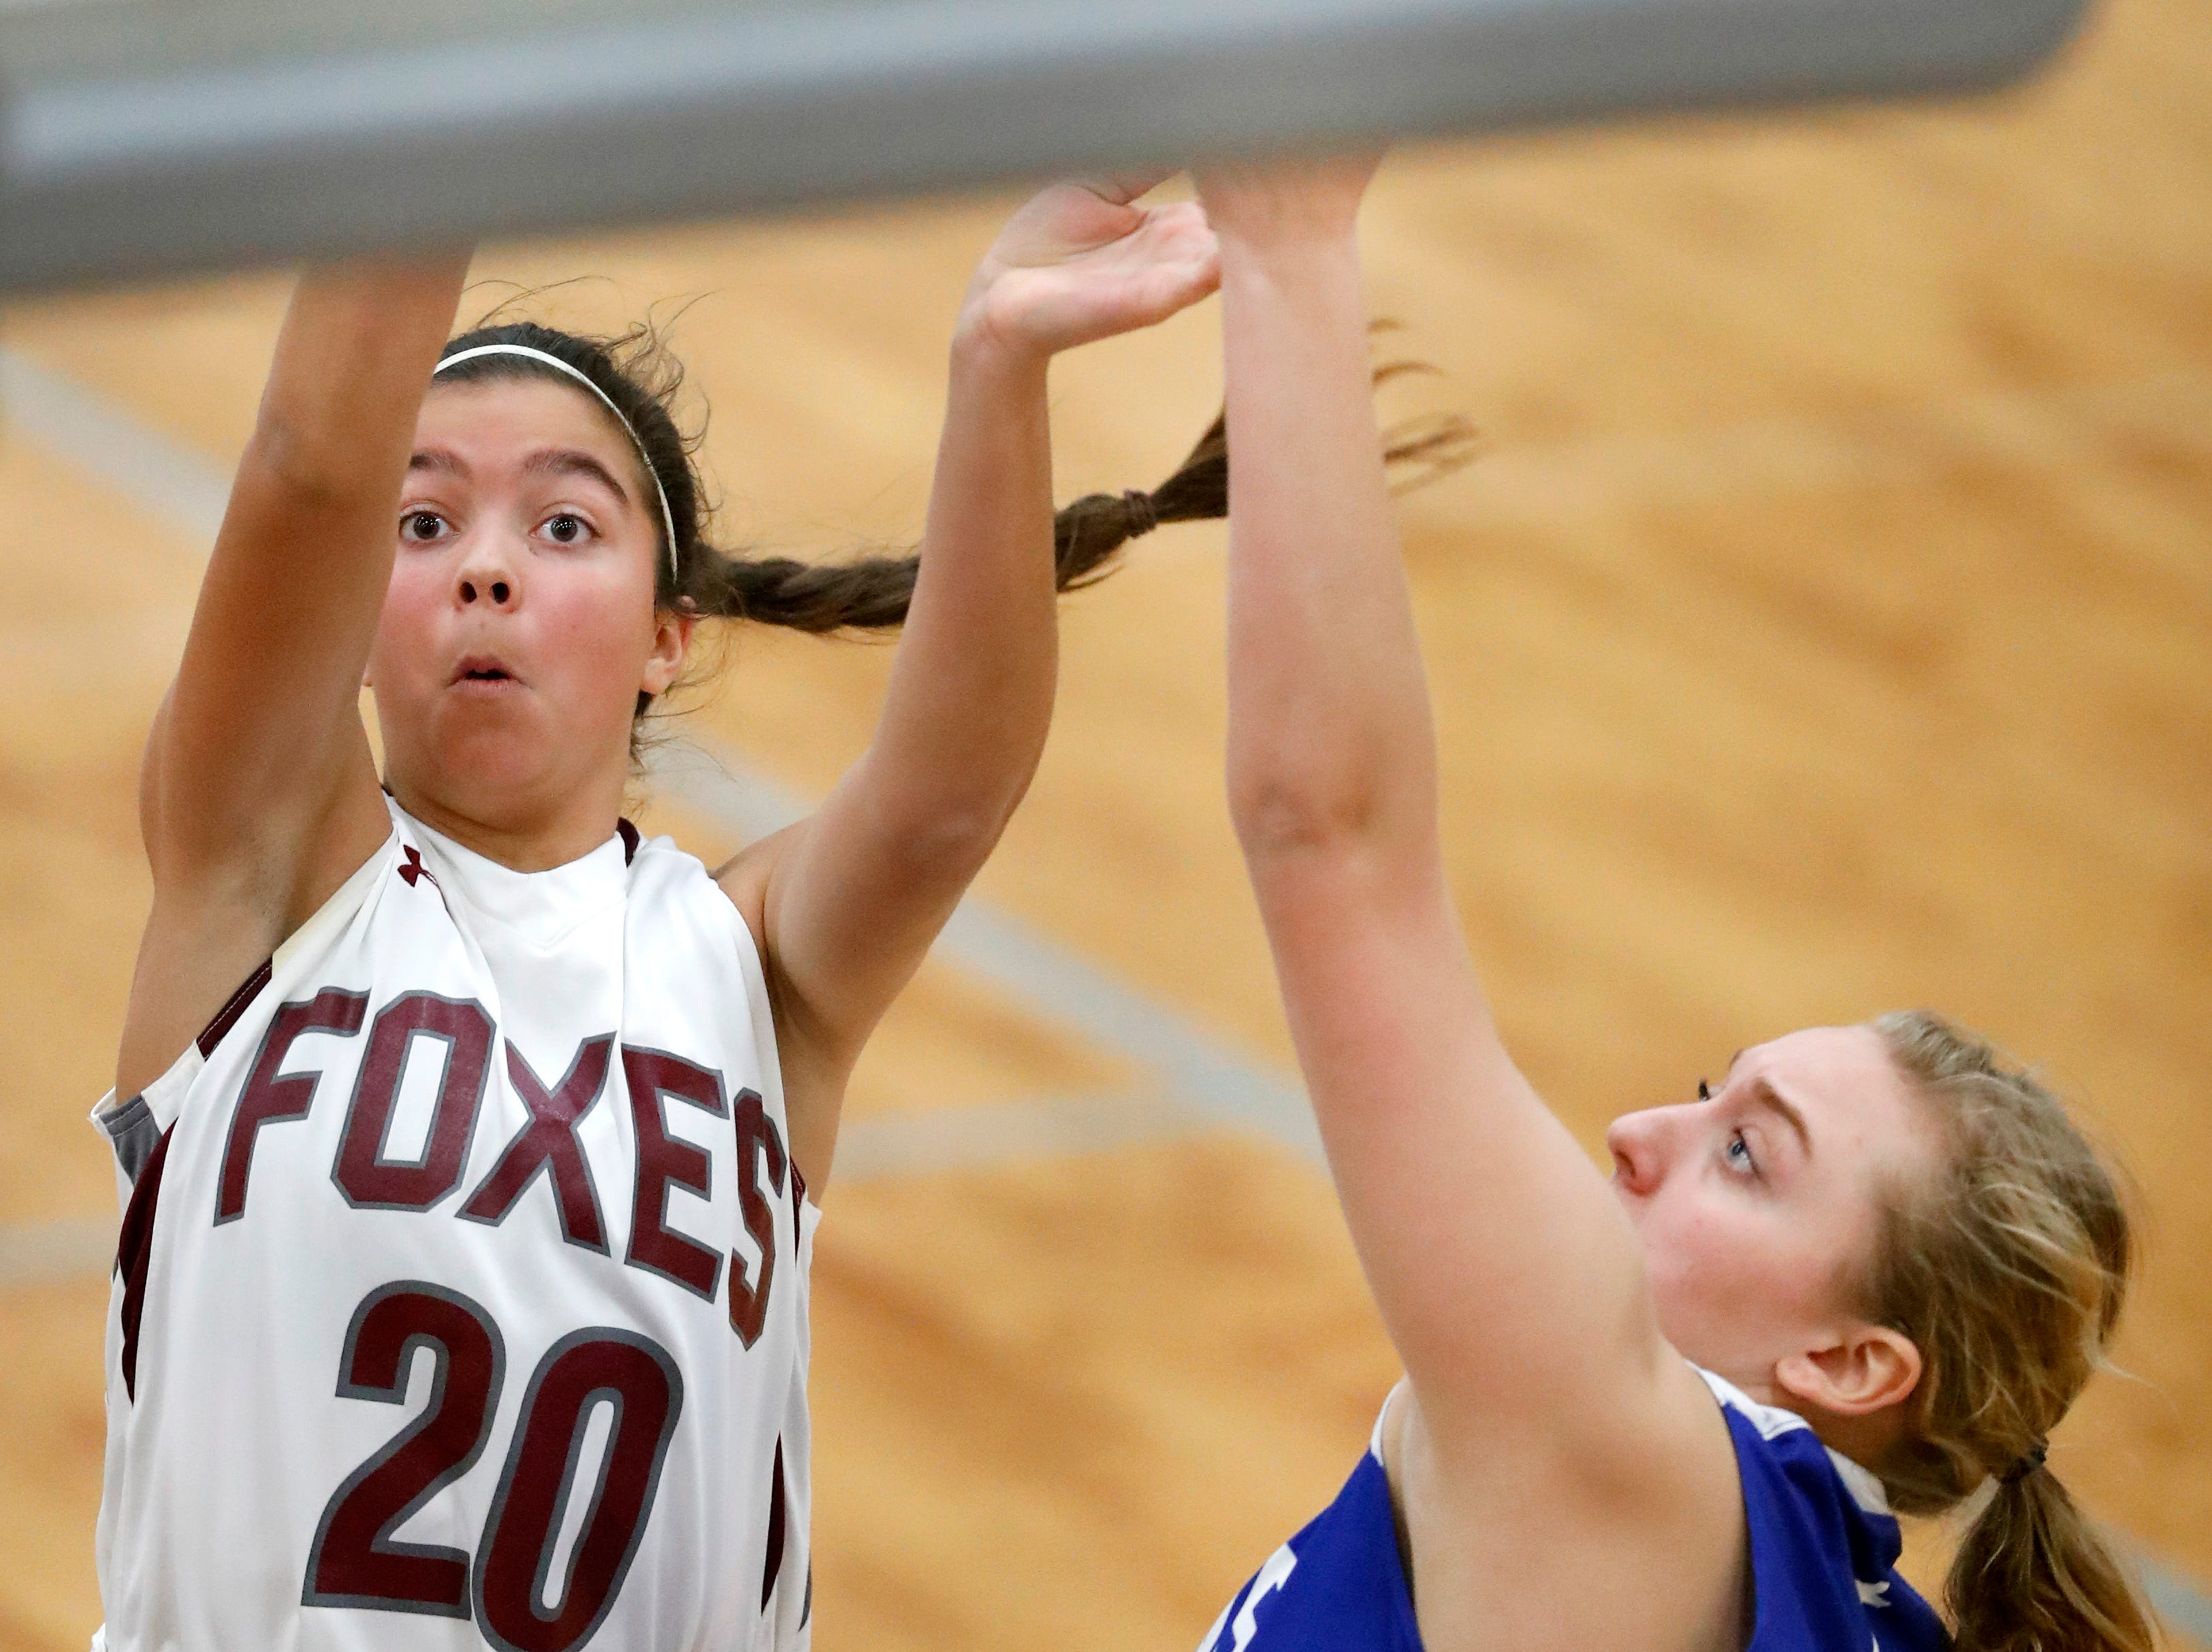 Fox Valley Lutheran High School's Maddie Jacobsen takes a shot against Winnebago Lutheran Academy Tuesday, Nov. 13, 2018, in Appleton, Wis. Fox Valley Lutheran High School lost to Winnebago Lutheran Academy 48-38.